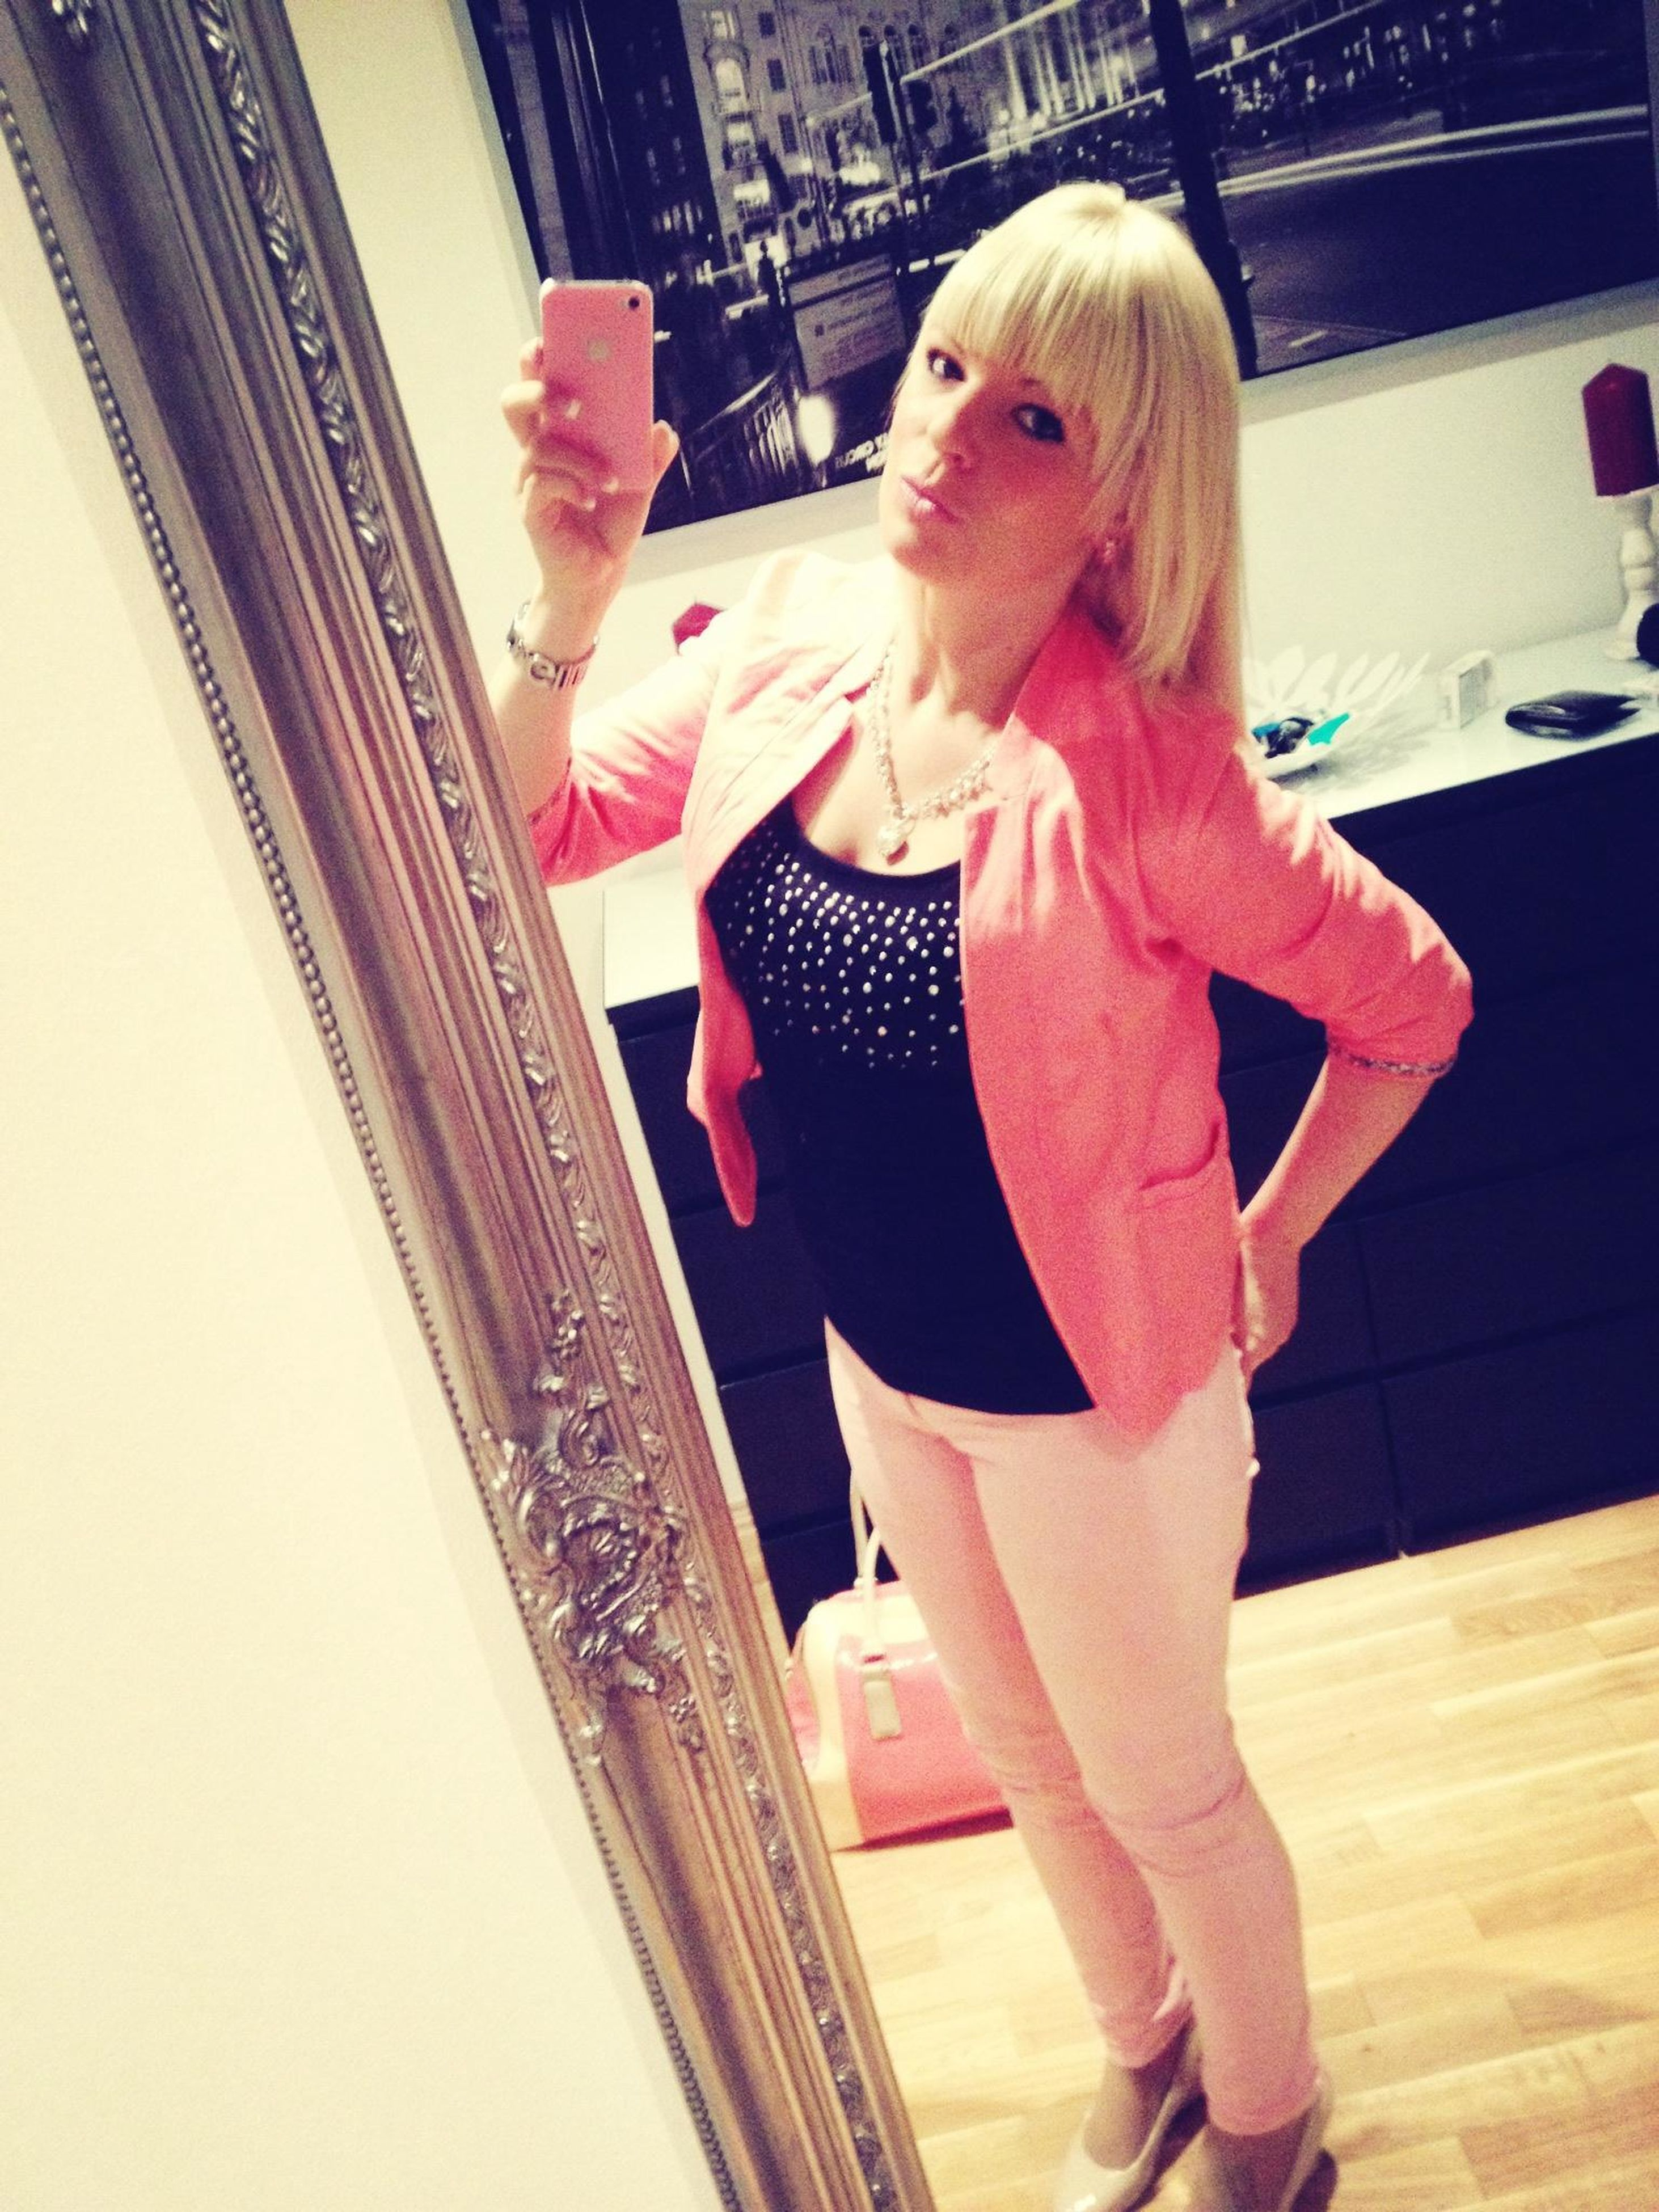 childhood, full length, person, elementary age, casual clothing, indoors, cute, lifestyles, innocence, girls, standing, leisure activity, blond hair, three quarter length, sitting, looking away, red, boys